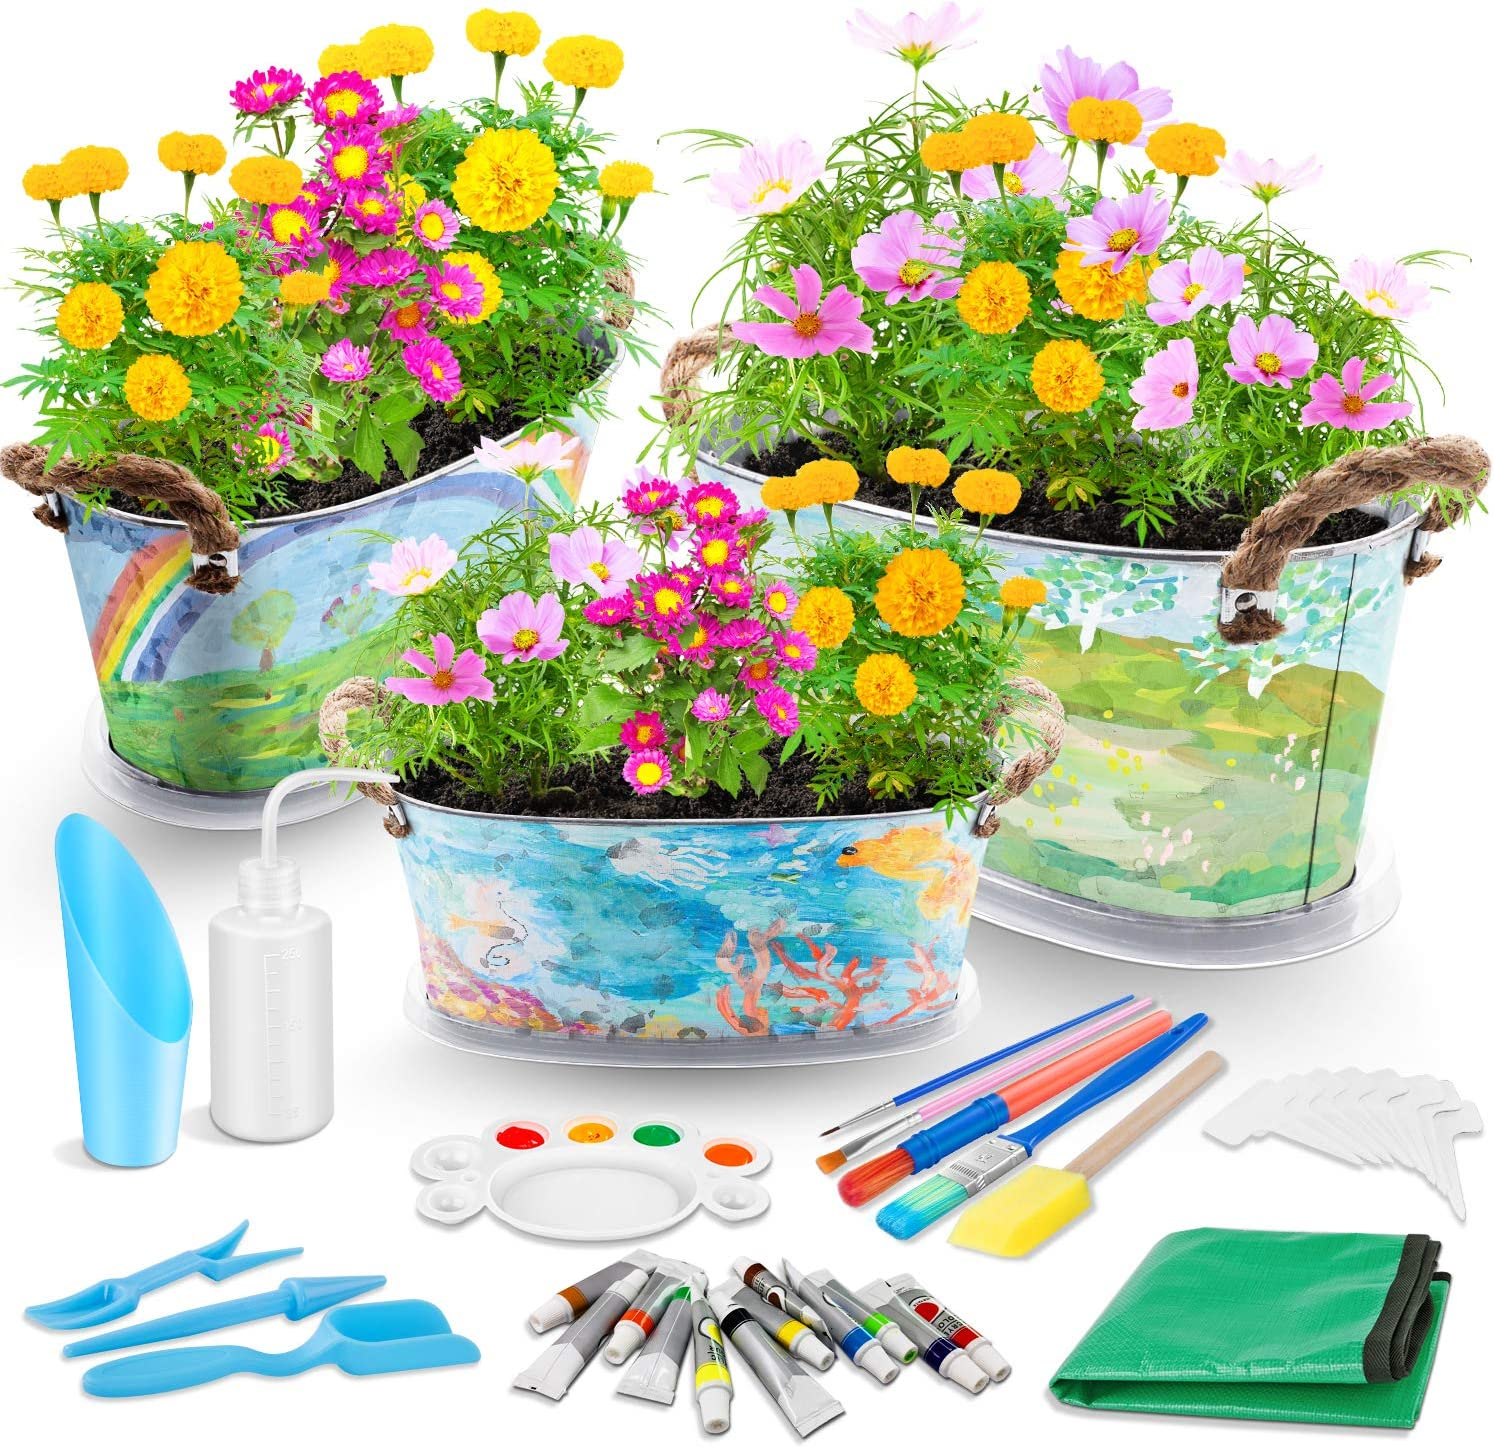 Kids Flower Planting Growing Garden Kit - Richoose Kids Gardening Plant and Paint Arts Crafts Set for Kids All Ages Both Girls and Boys Science STEM